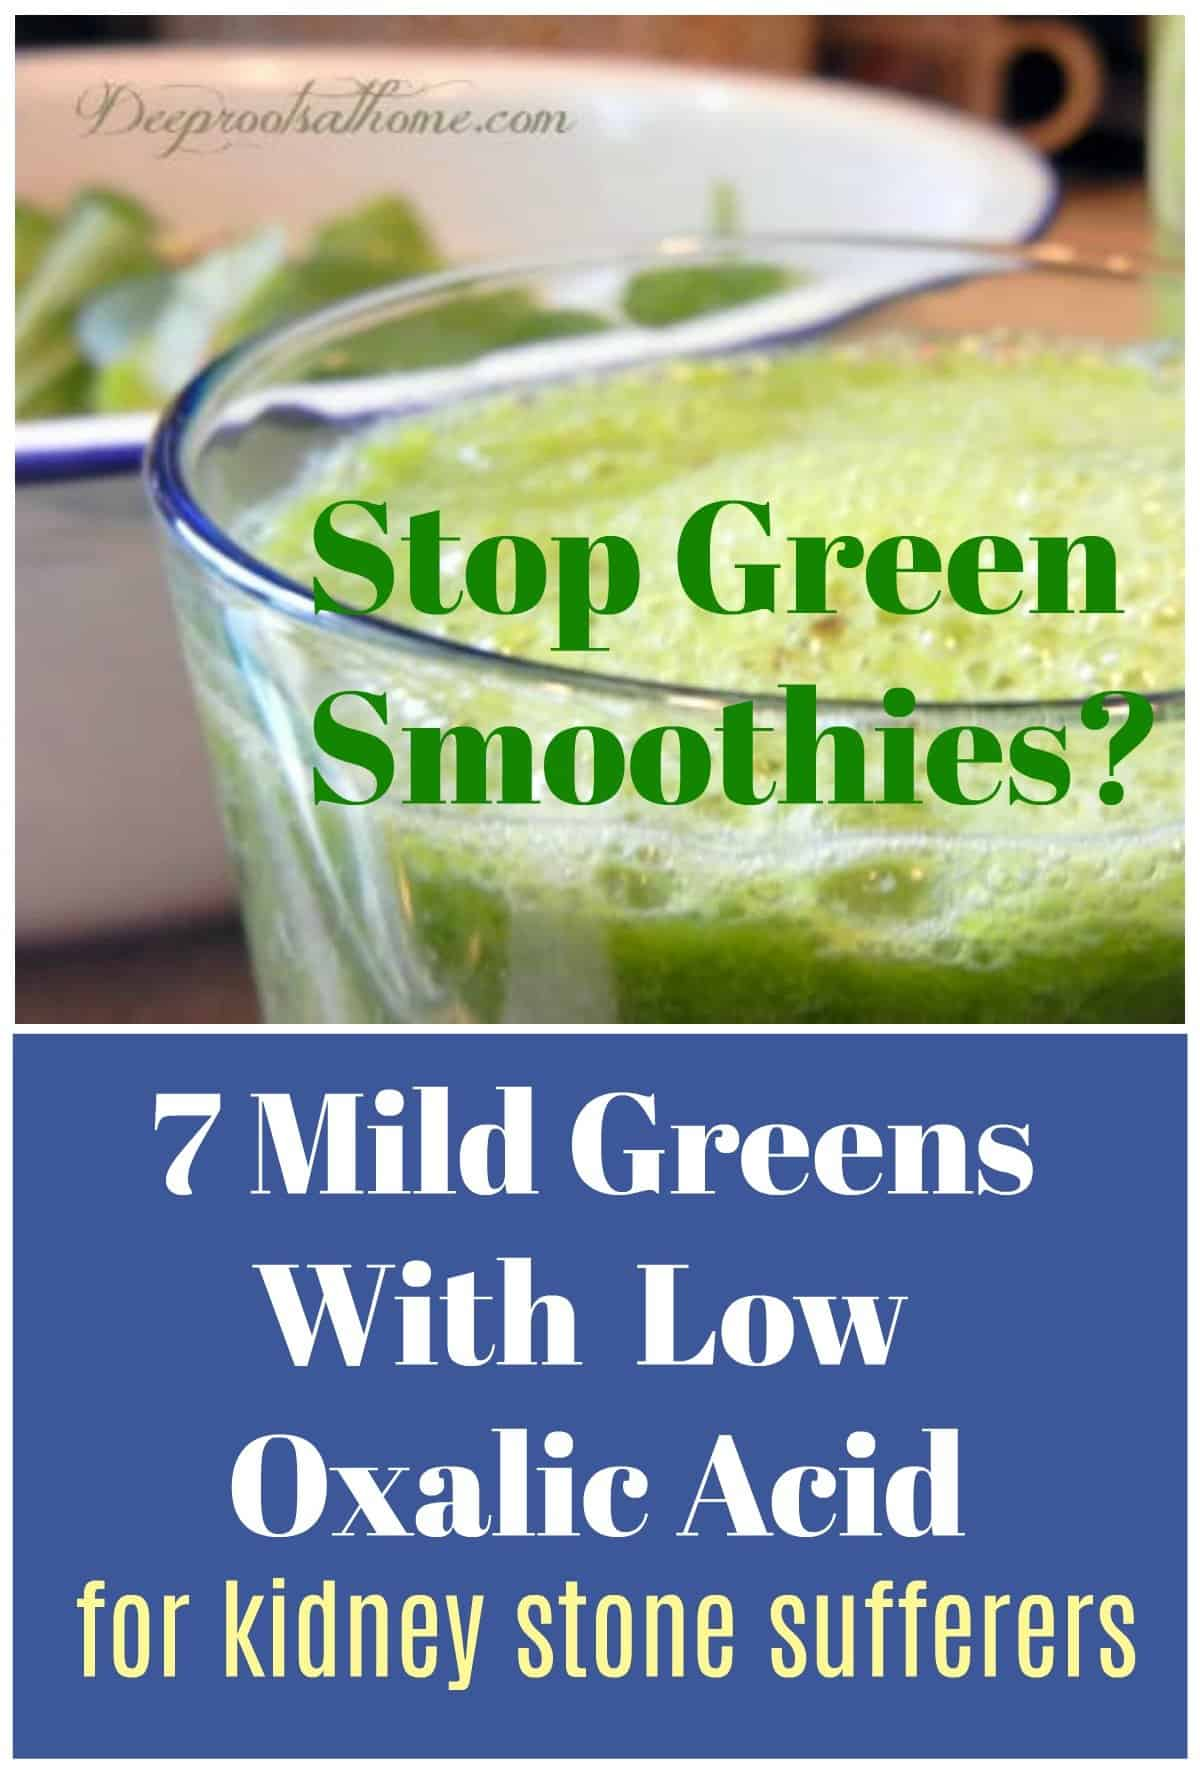 Stop Green Smoothies? 7 Mild Greens With Low Oxalic Acid. A bright green smoothie.